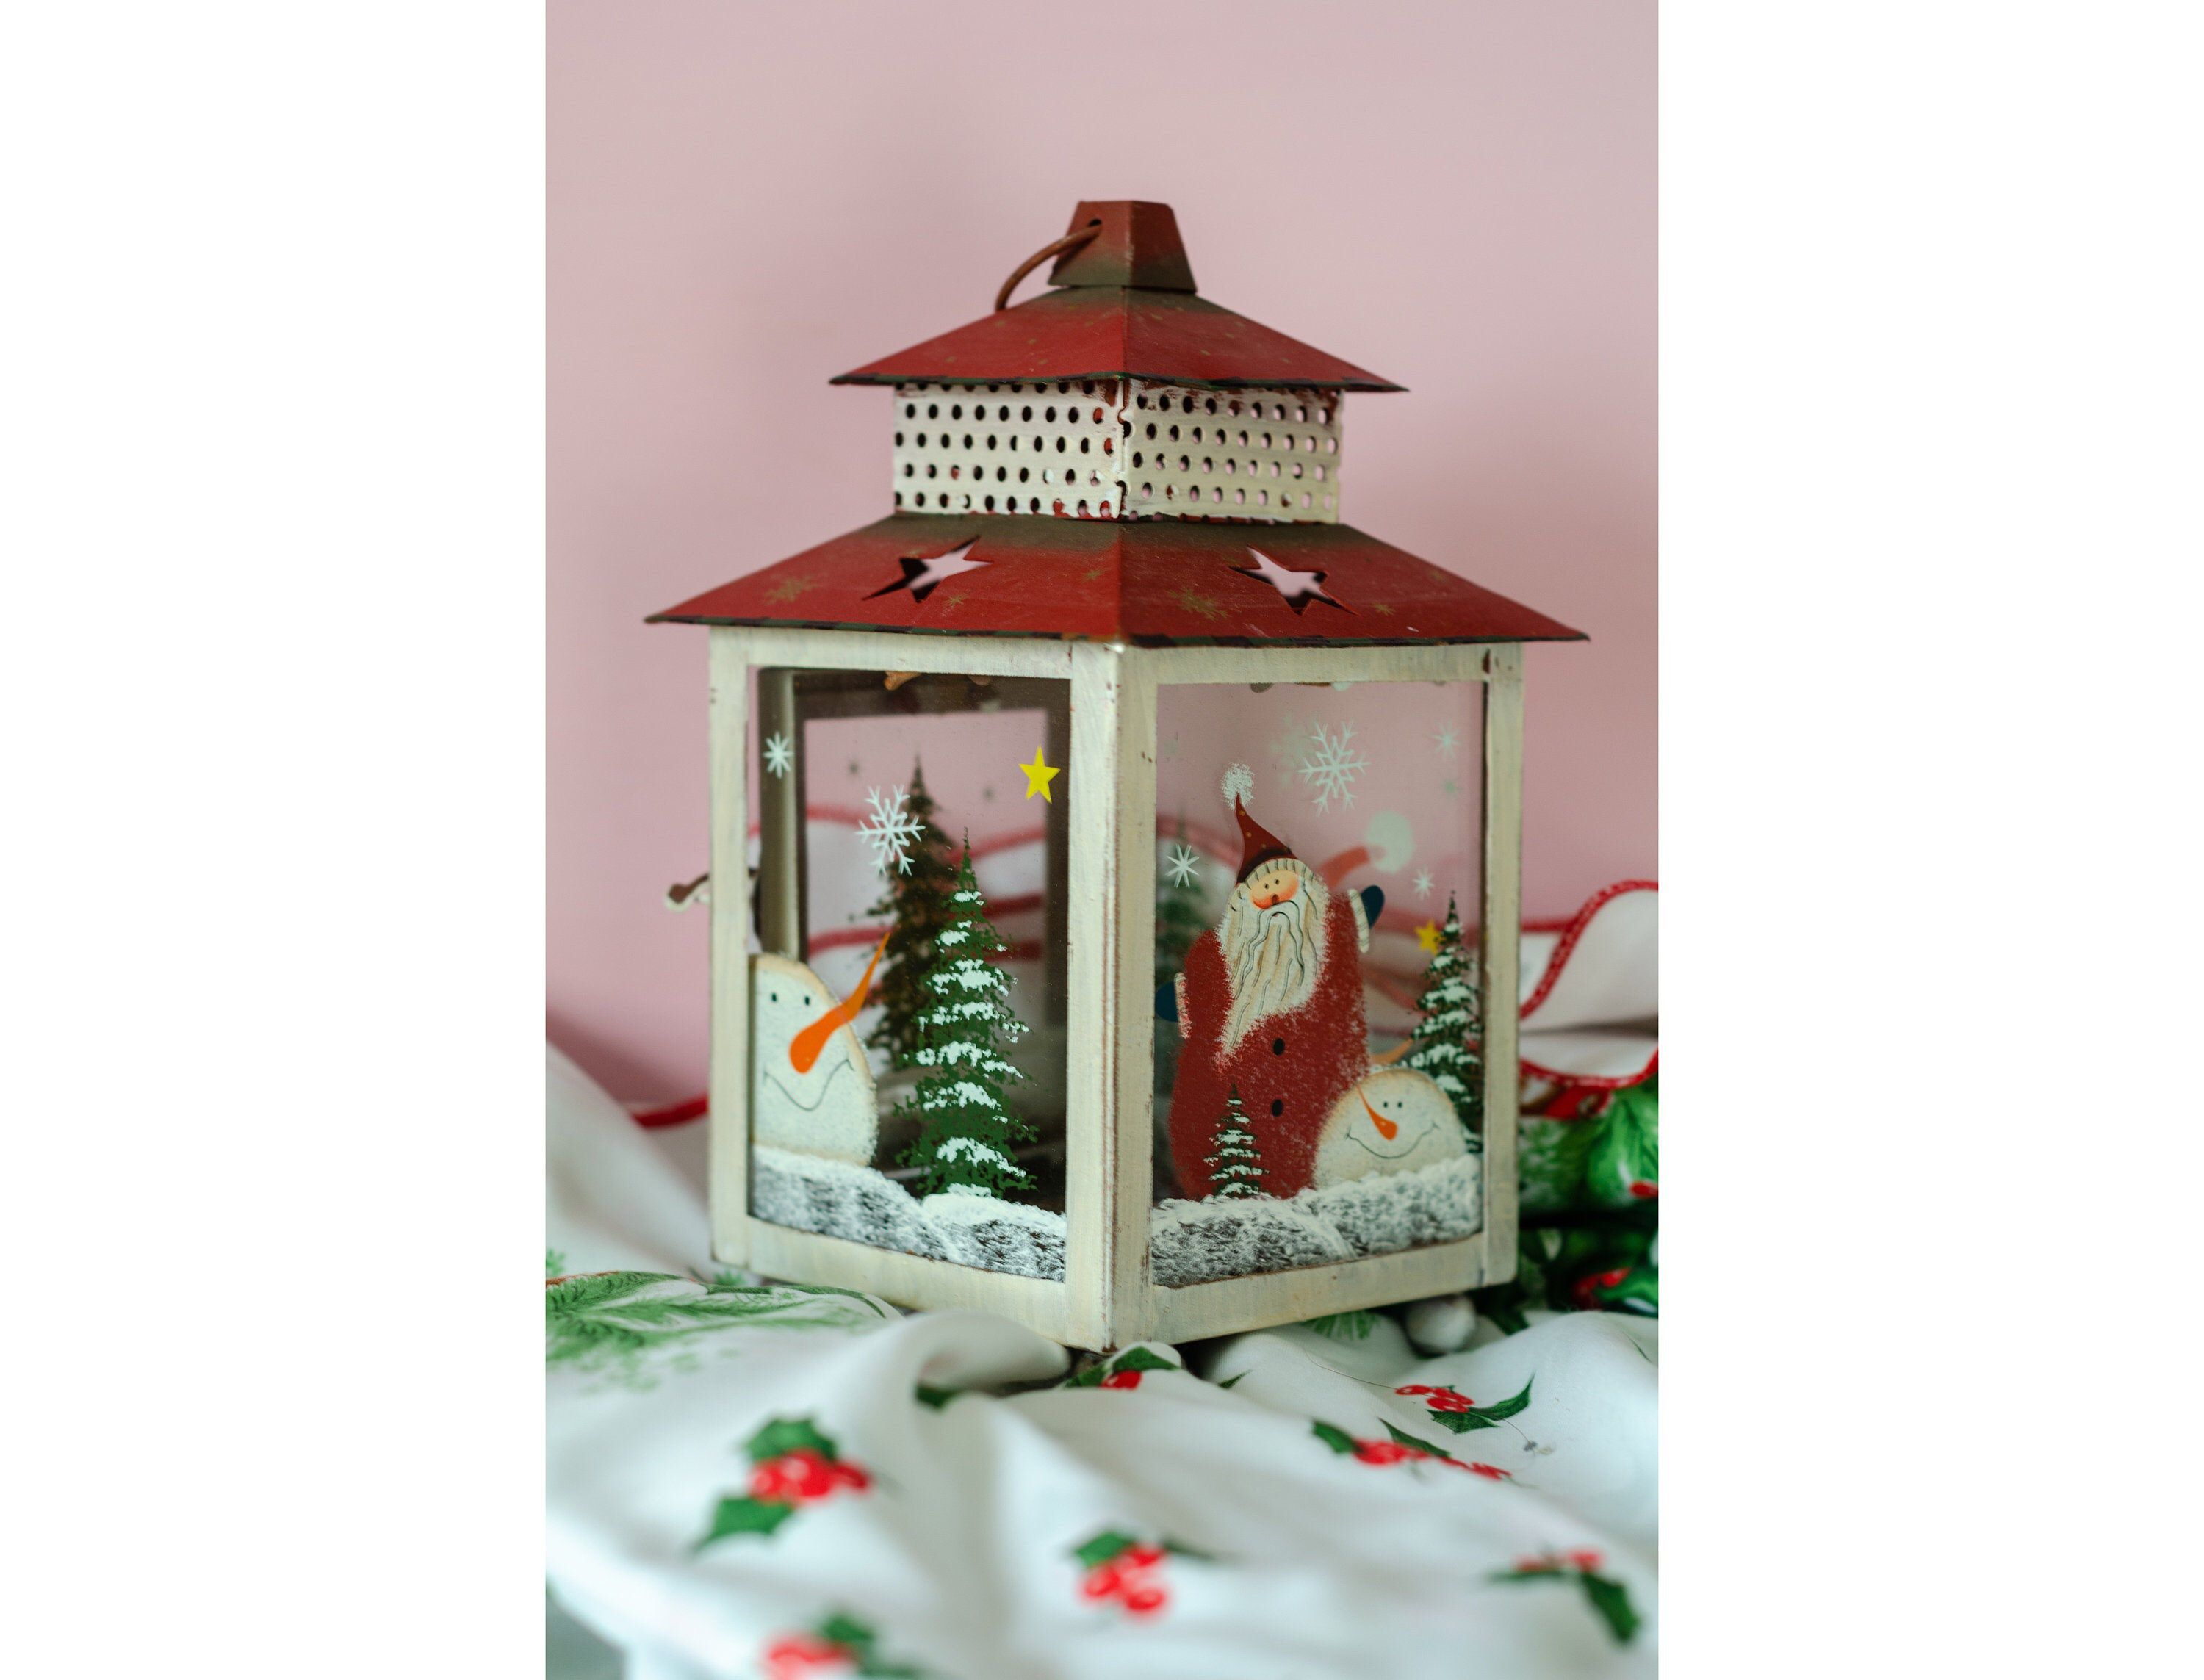 Metal Candle Holder Lantern with Hand painted Christmas Snowman Decorations